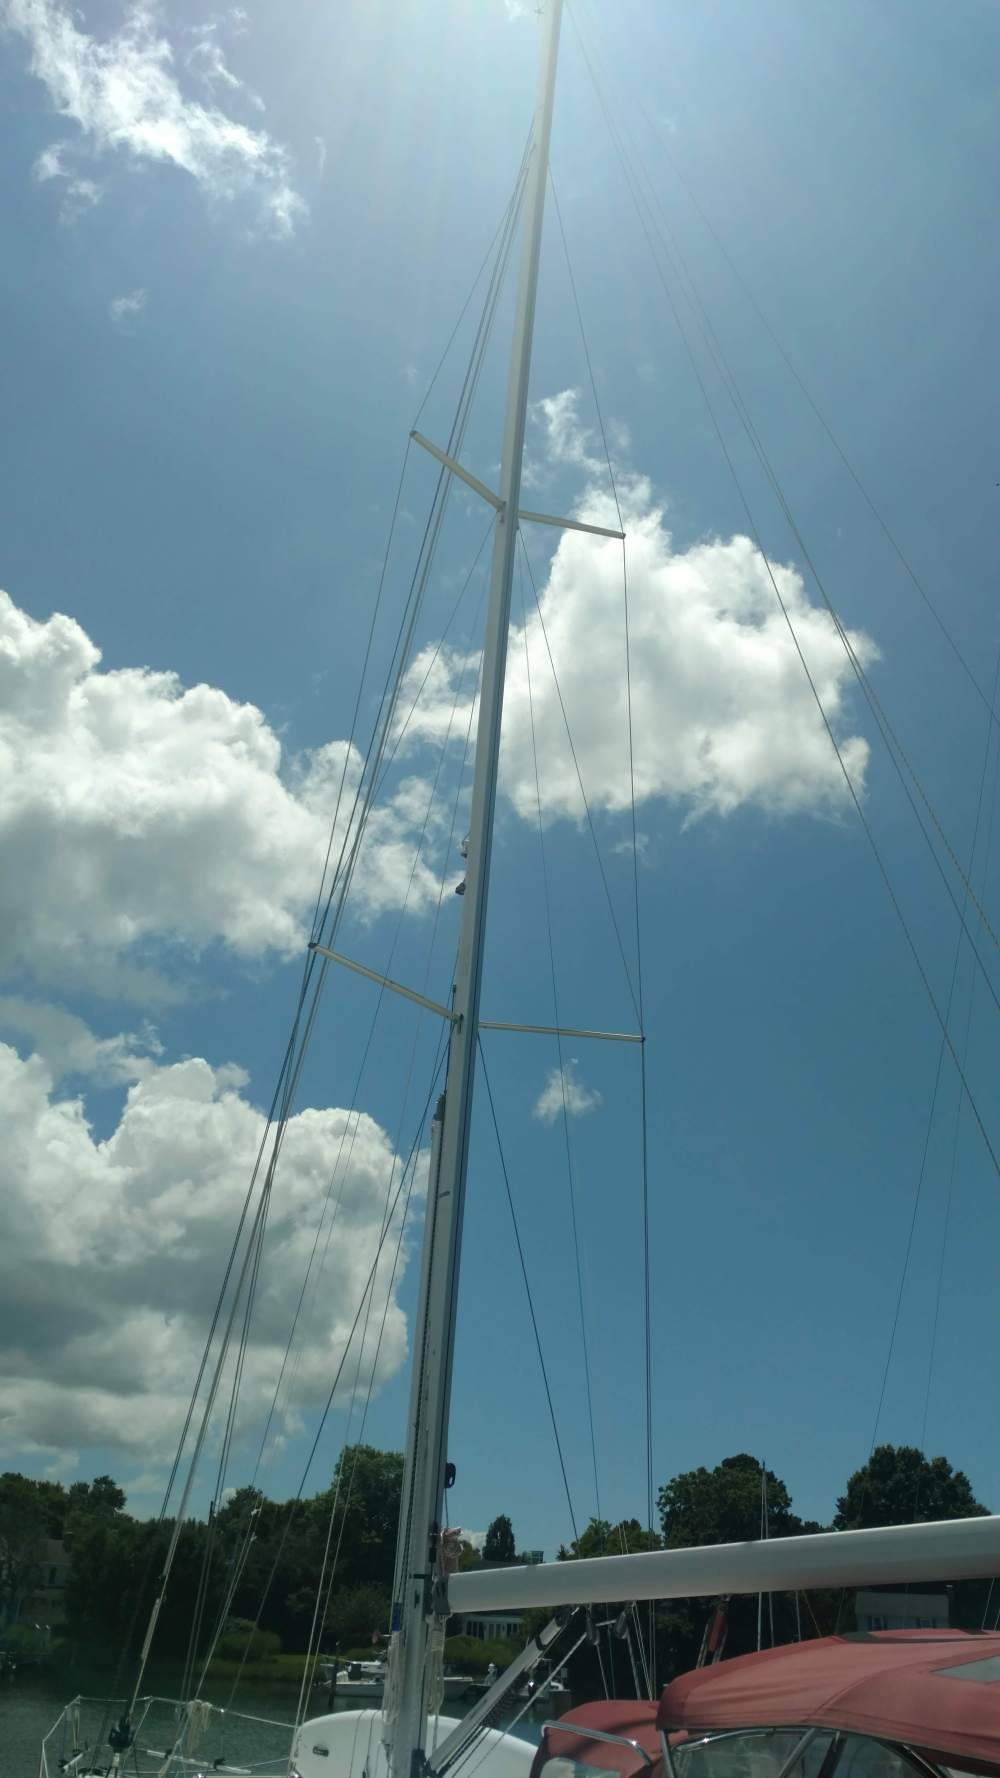 New Mast Dufour 43. The Rigging Company. Oxford.